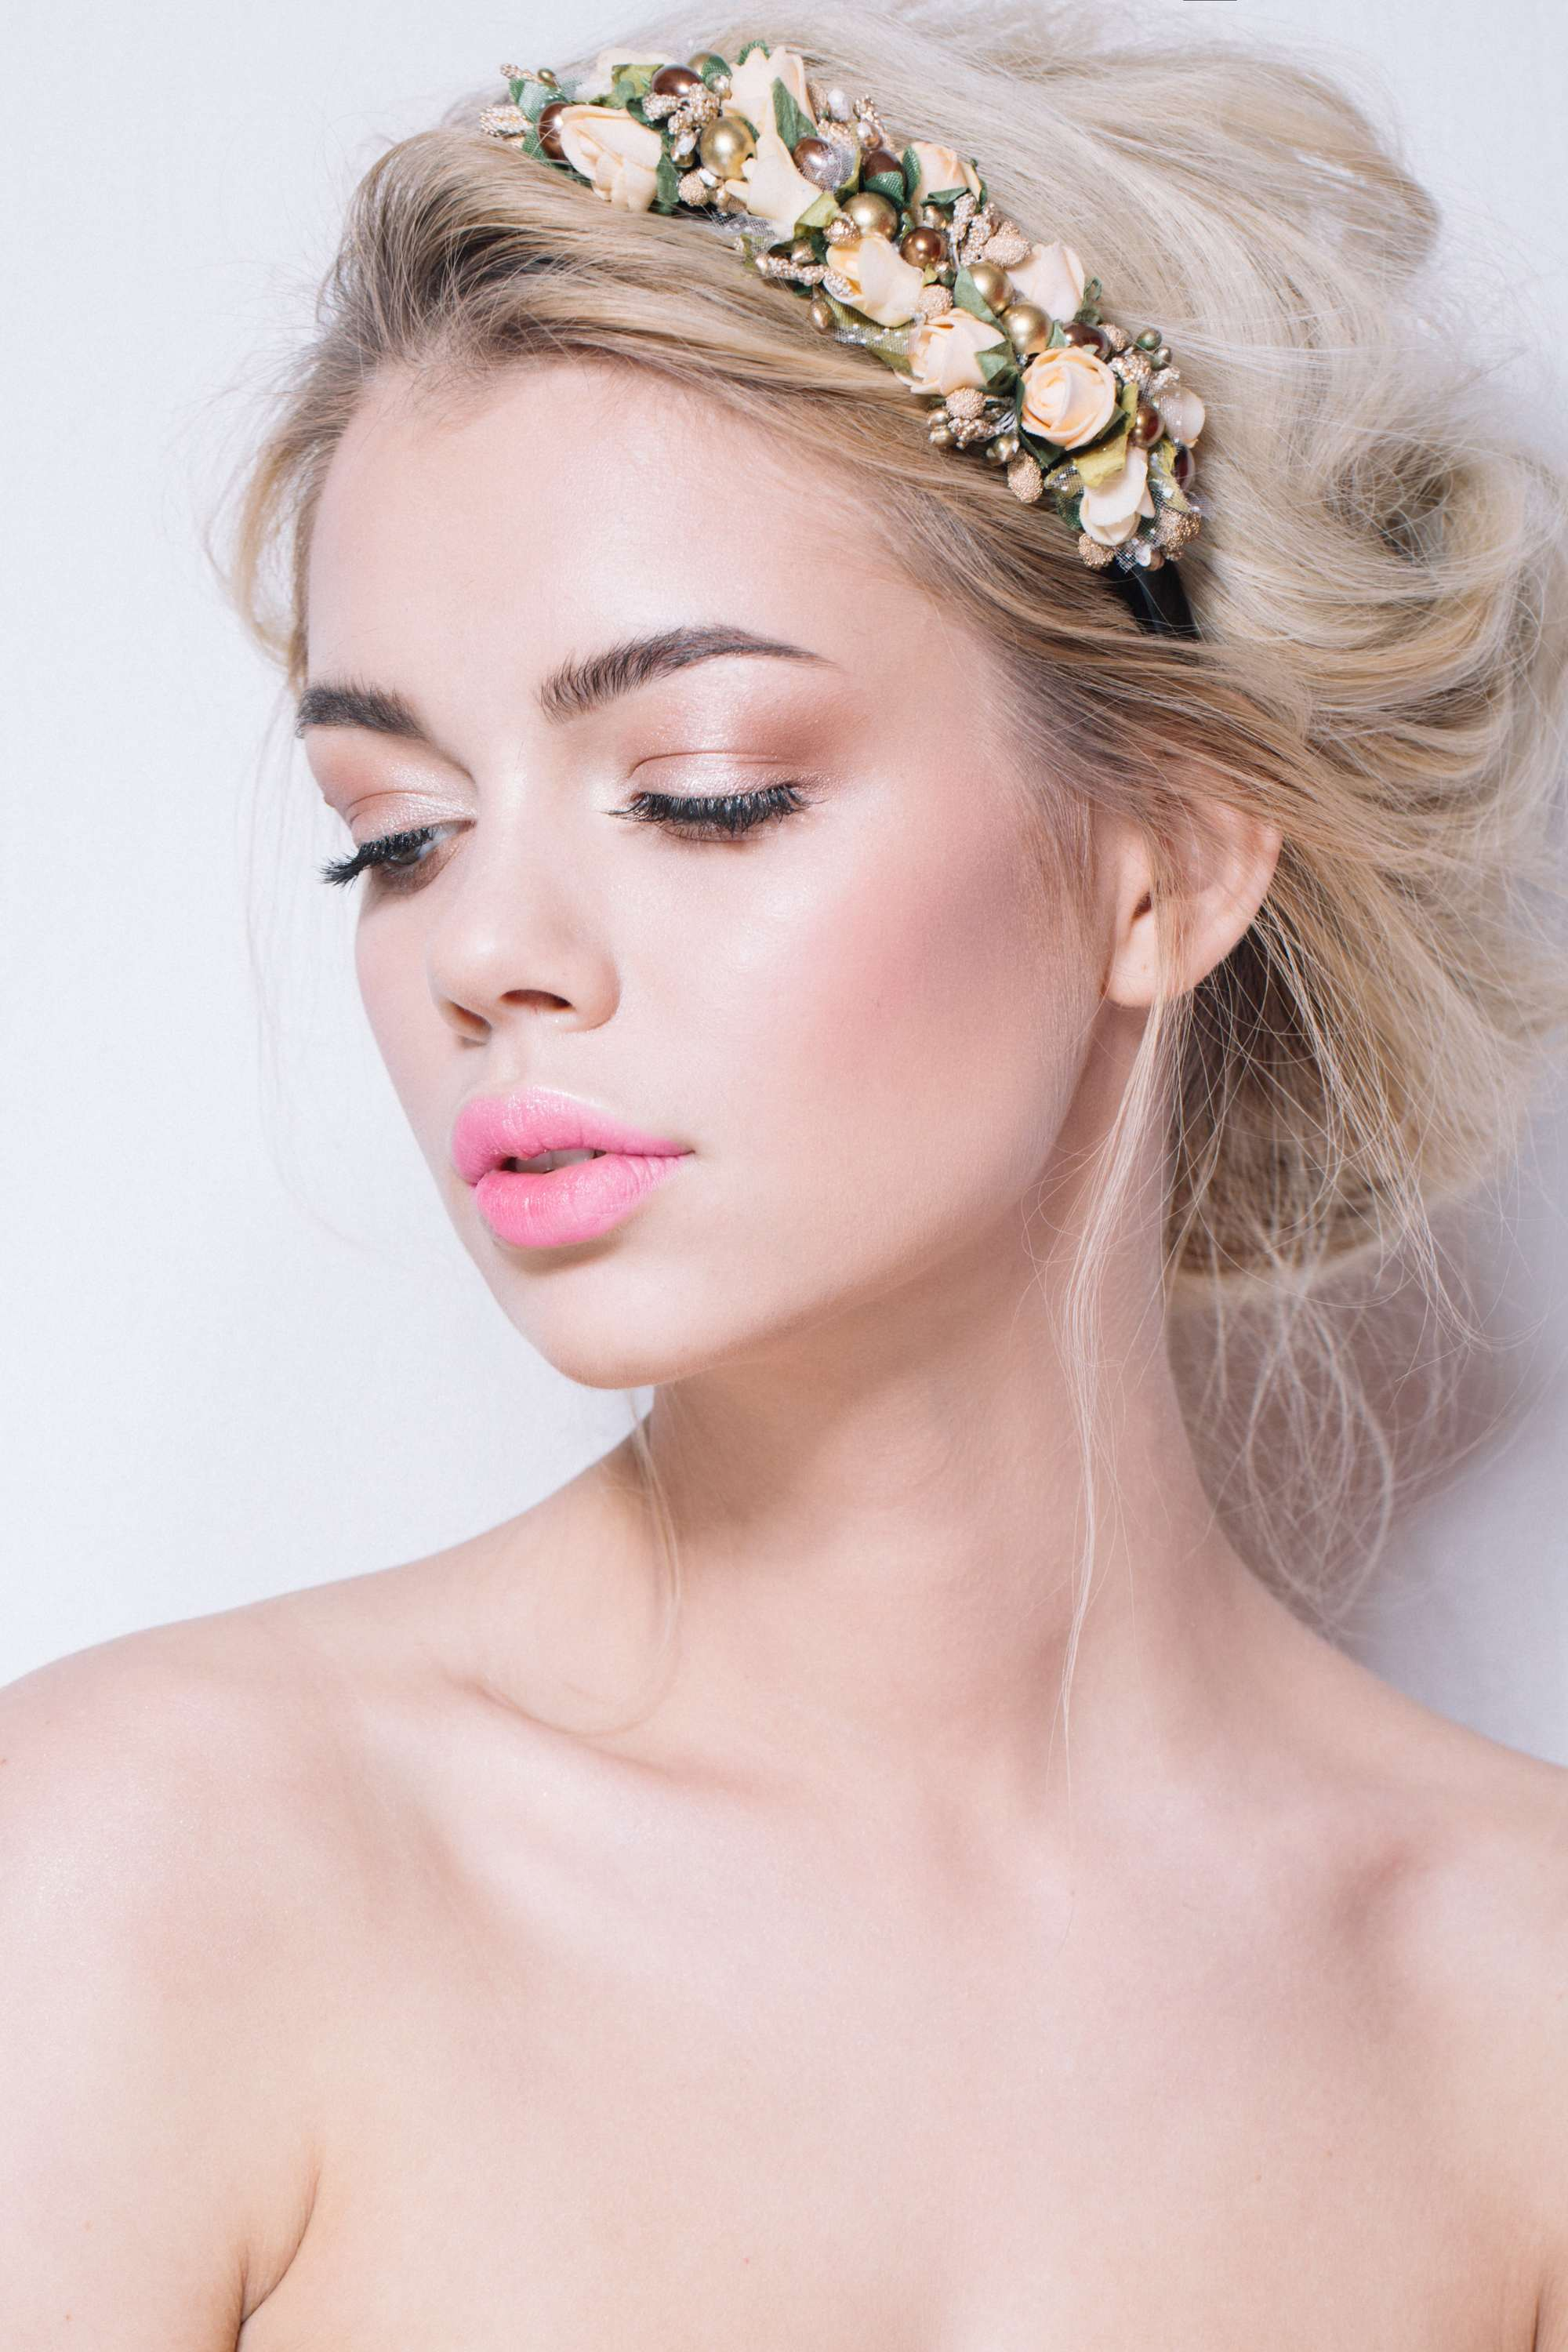 Blonde hair in loose updo finished with floral headband